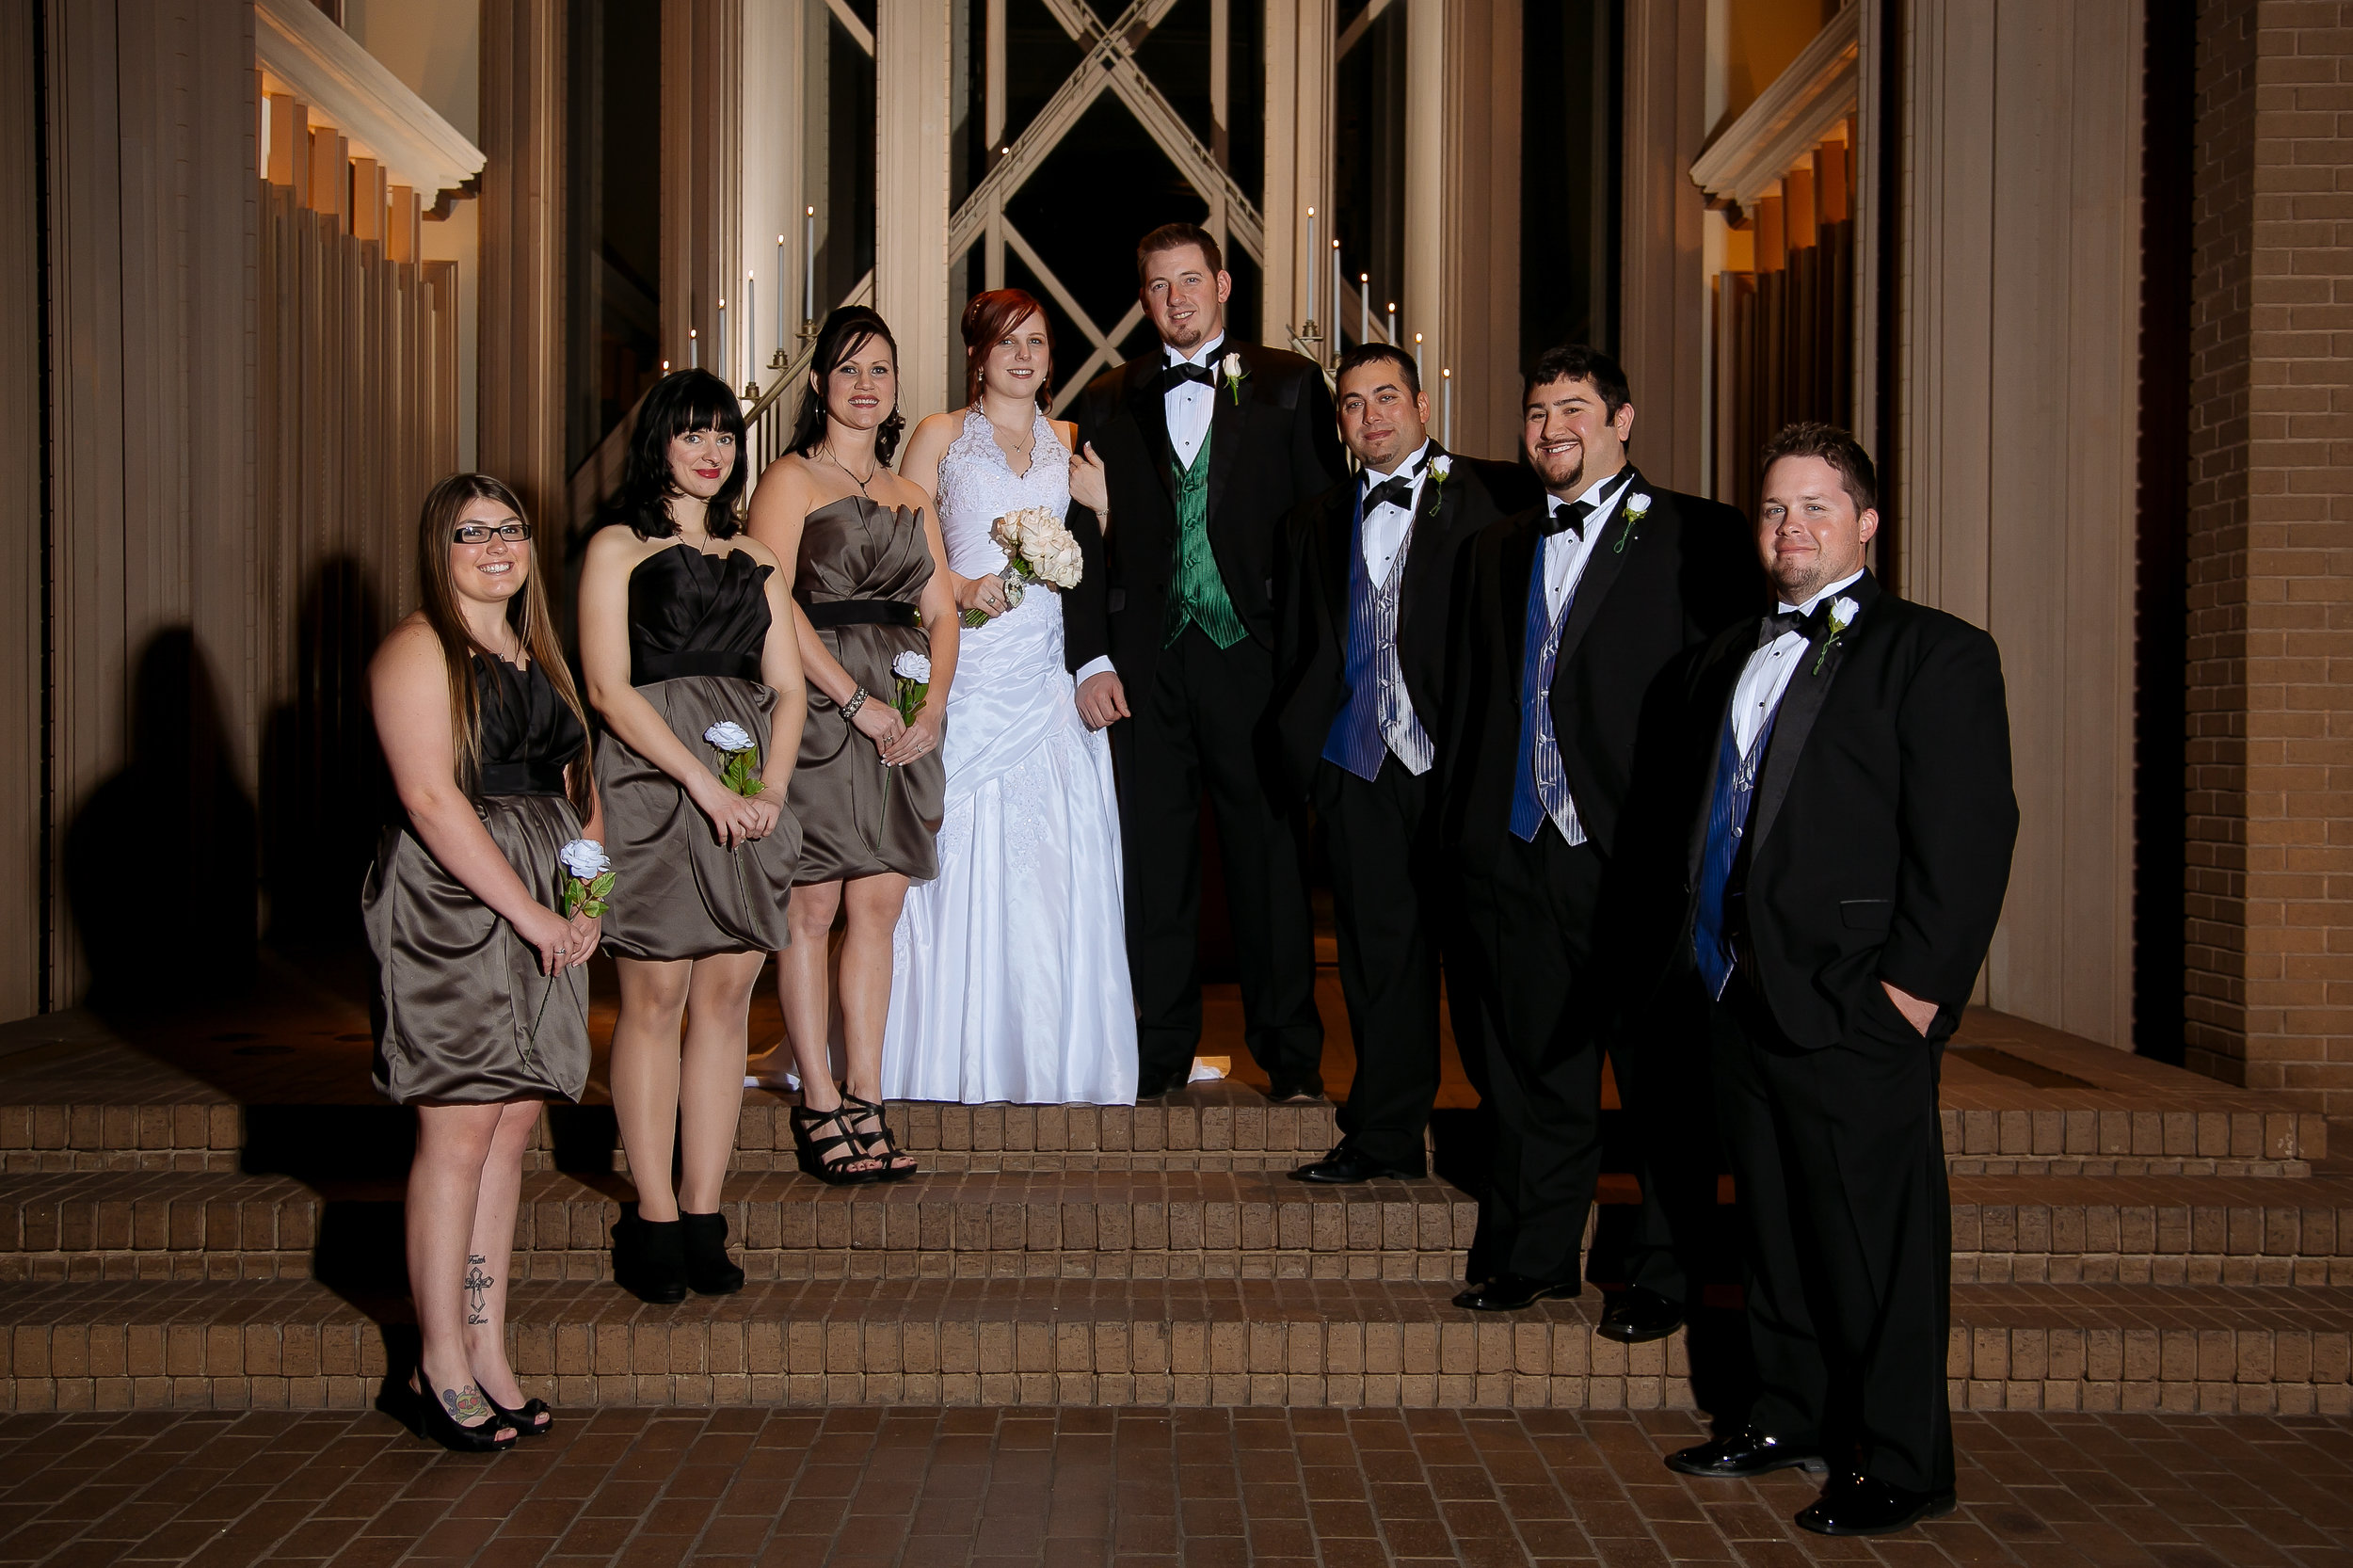 JMP-Stanley Wedding 2012 (167).jpg